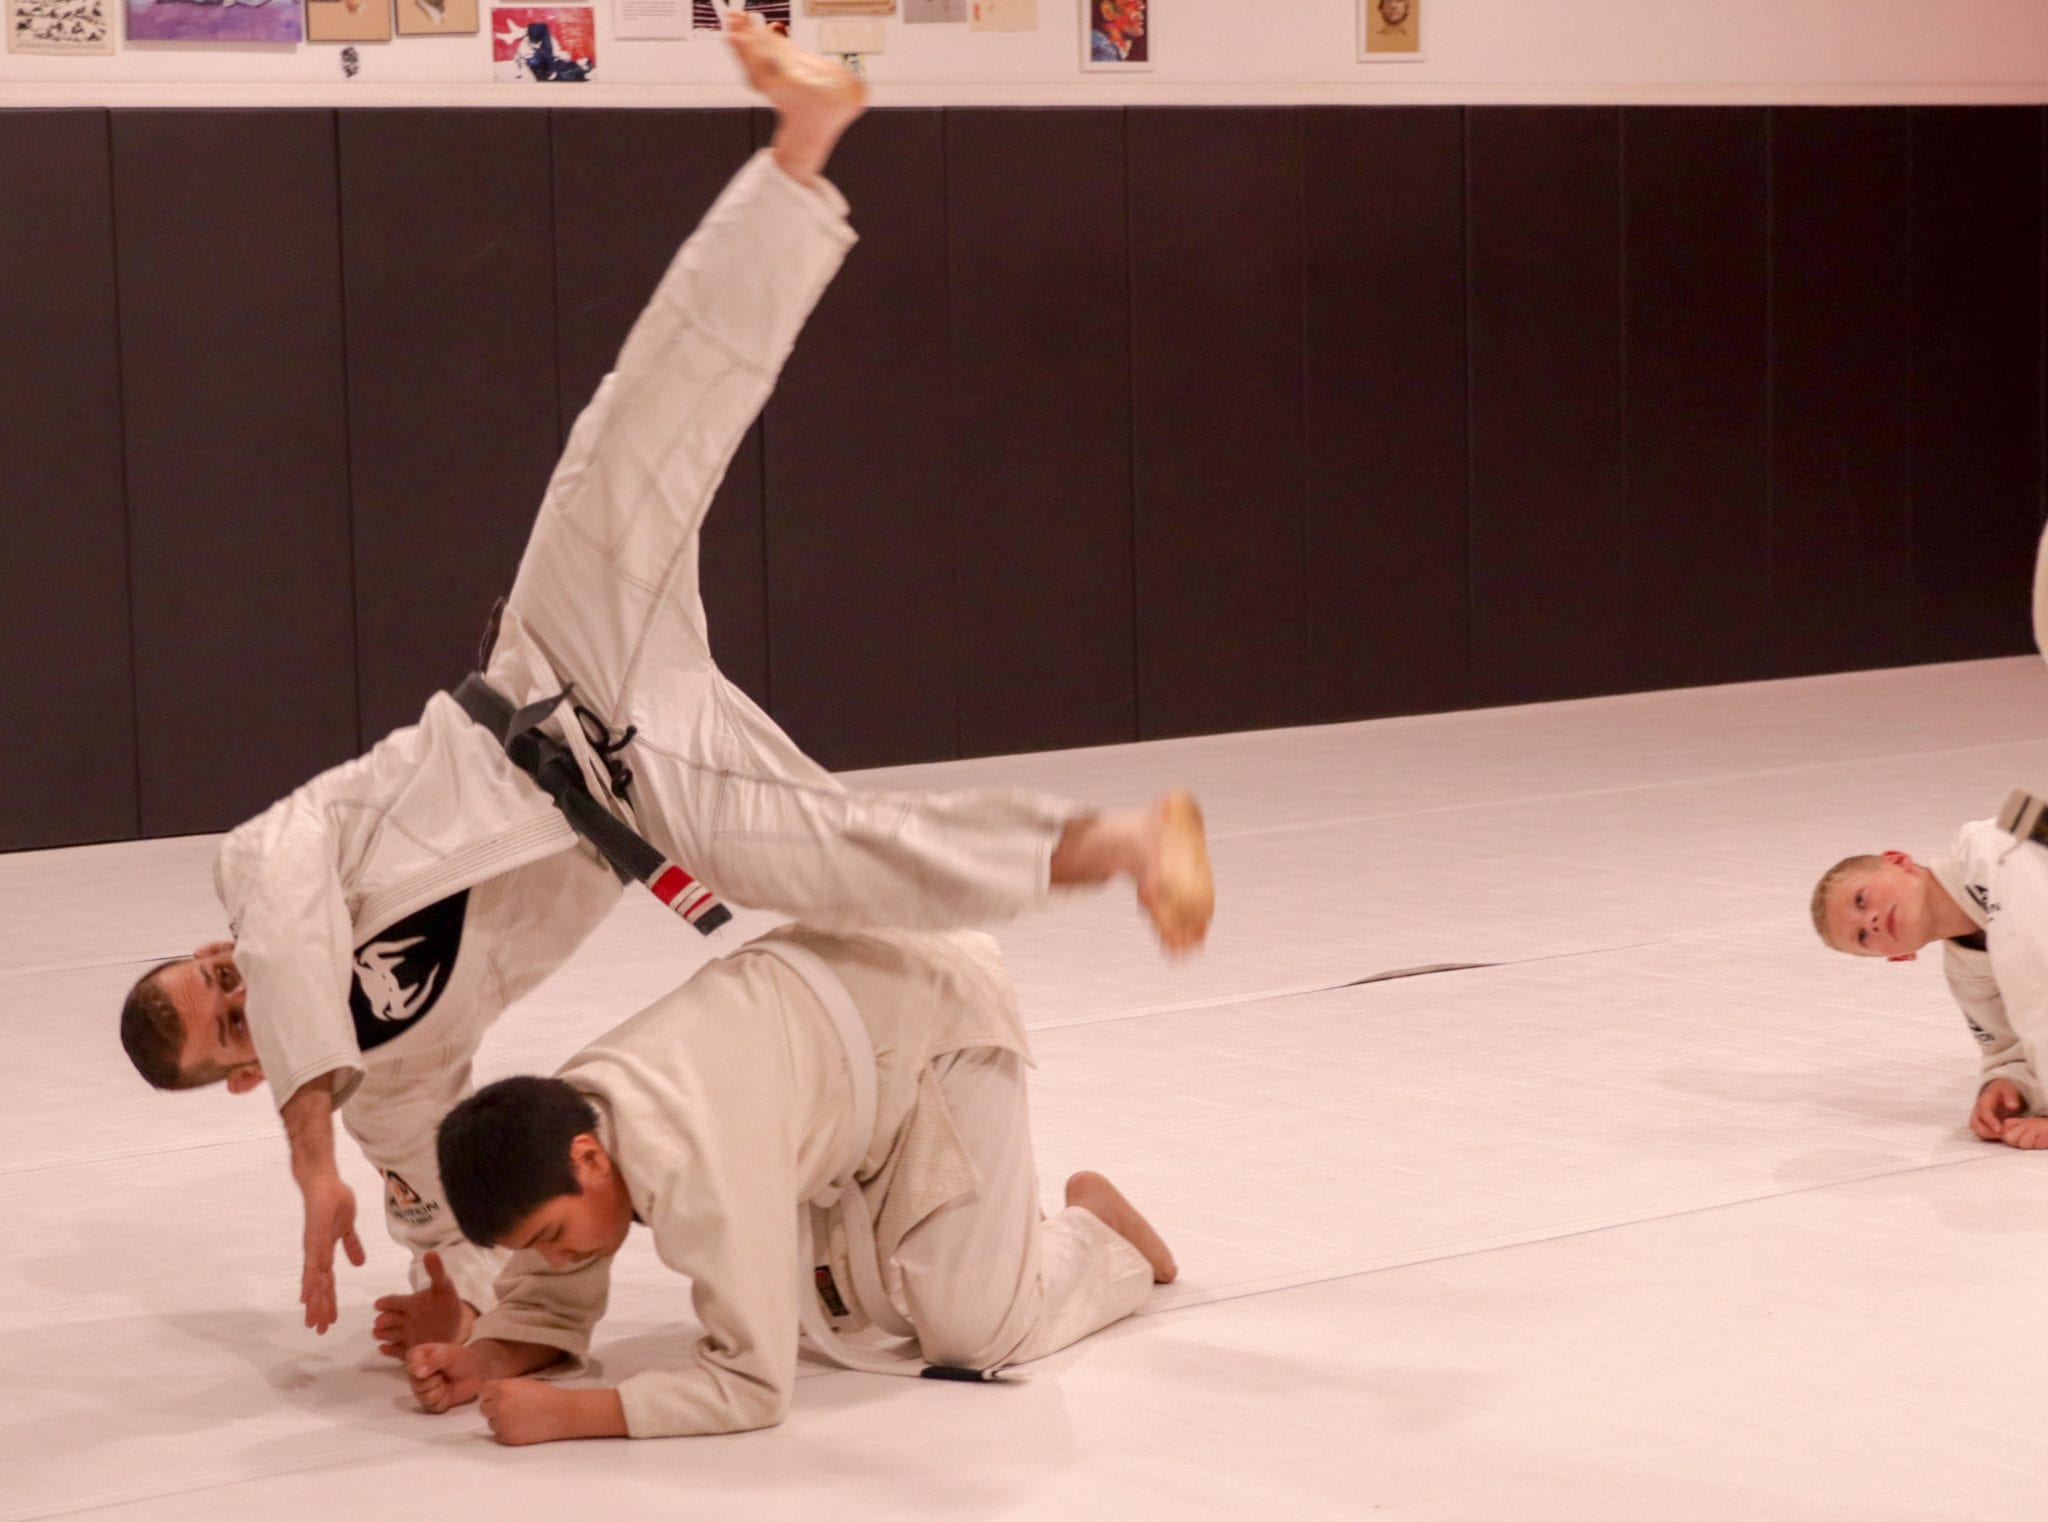 brian practicing a bjj move